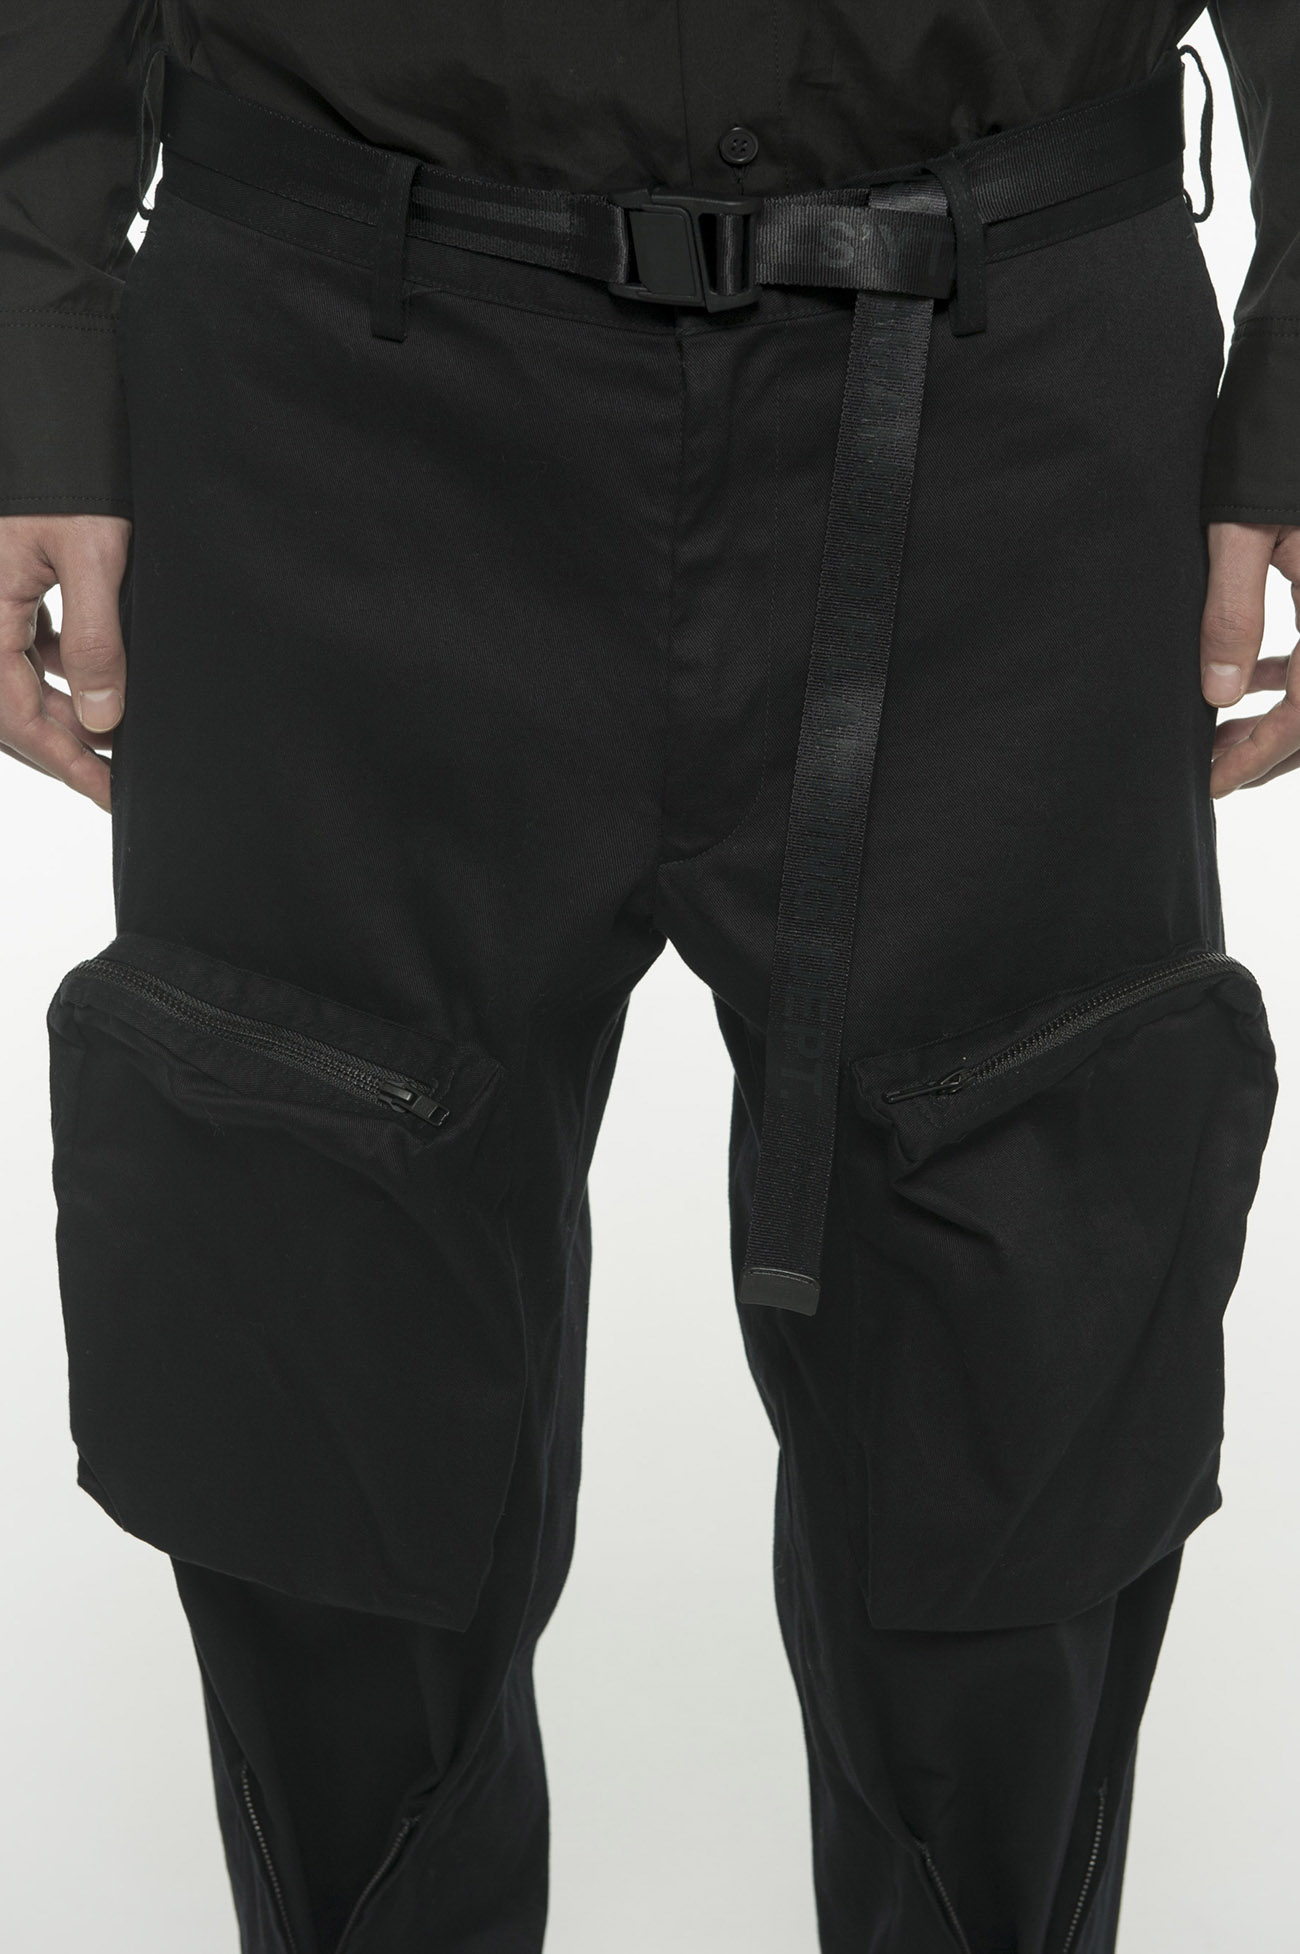 20 / Cotton Twill Bondage Zipper Cargo Pants